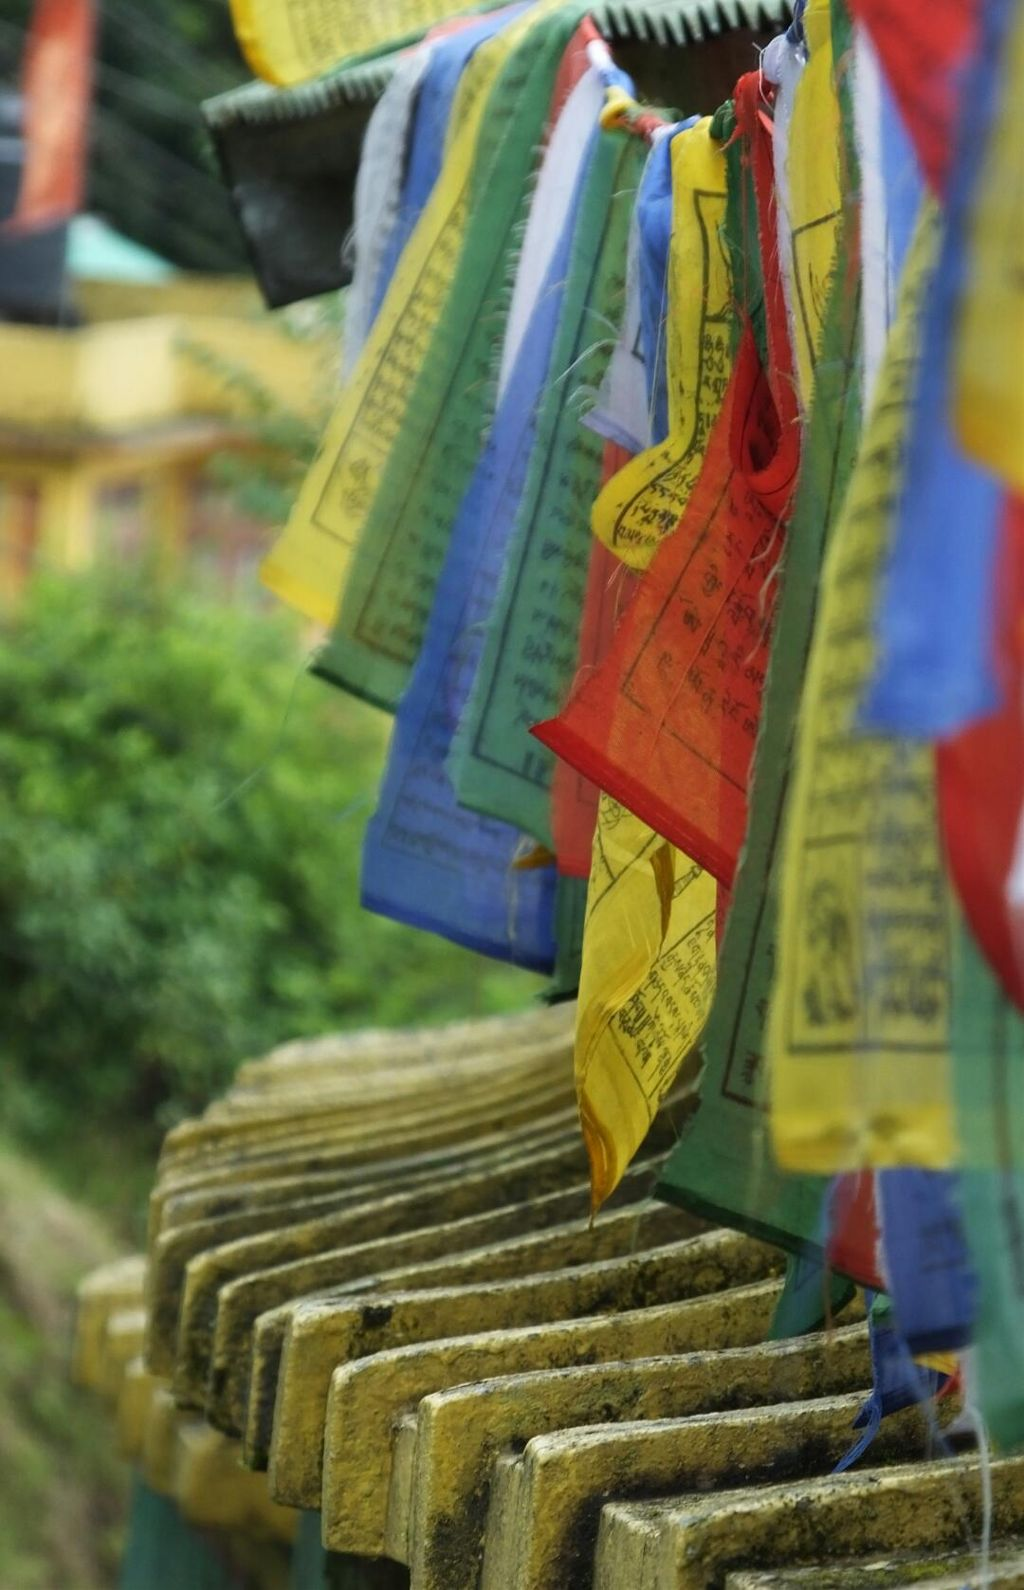 #prayer #flags #colorful #colorsplash #travel  #photography #monastery